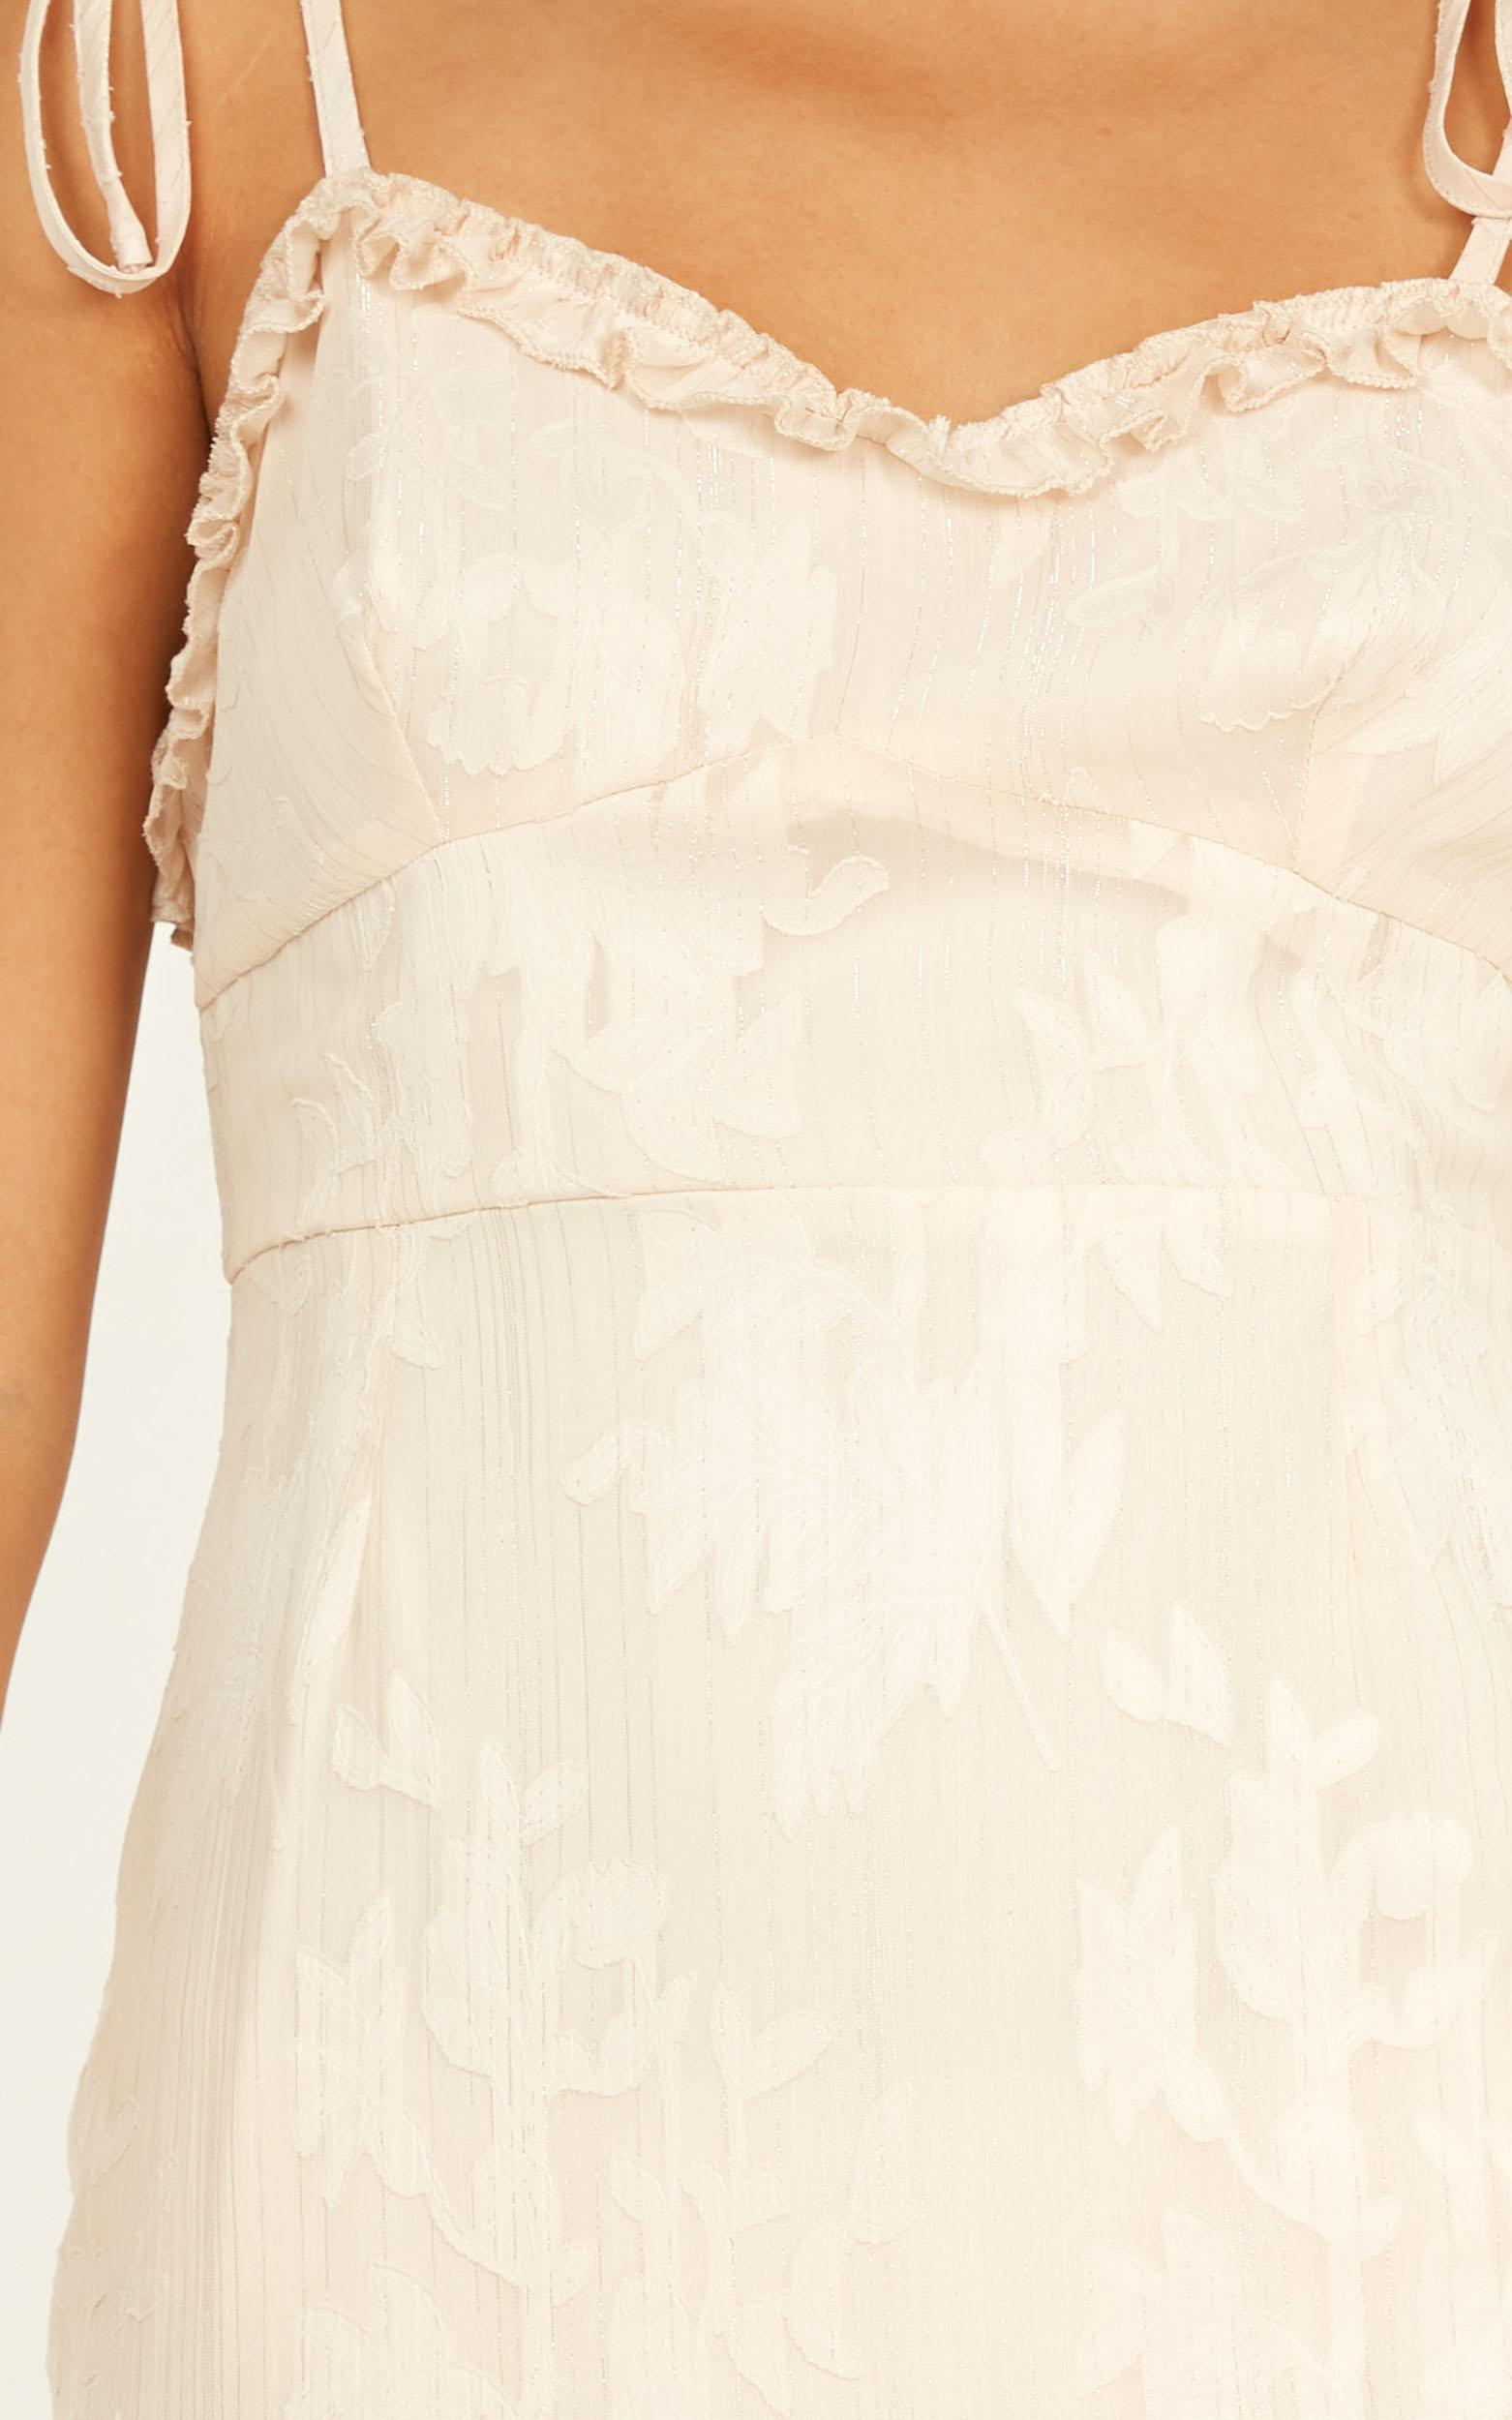 Friends For Evs Dress In Cream Burnout - 20 (XXXXL), Cream, hi-res image number null